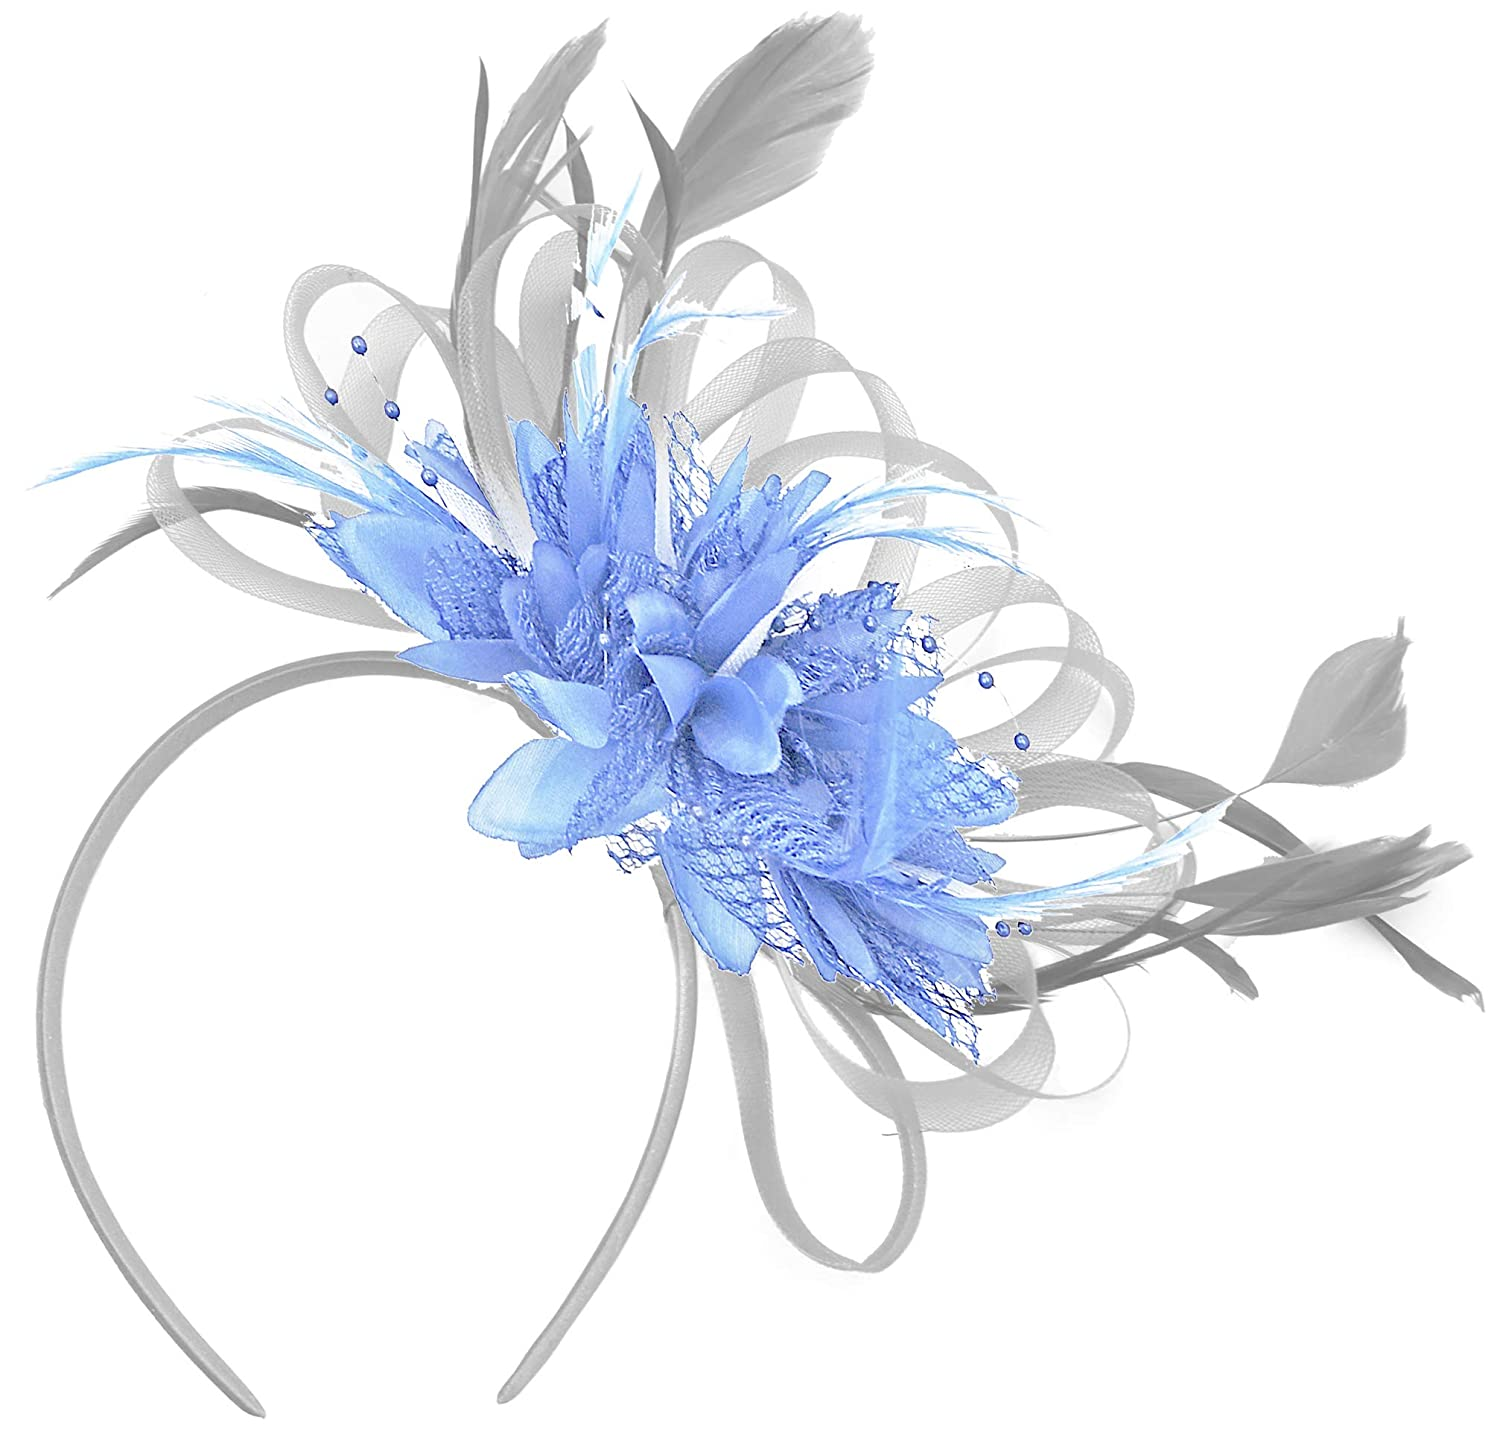 Silver and Baby Blue Fascinator Light Net Hoop Feather Hair Headband  Wedding Royal Ascot Races at Amazon Women s Clothing store  c581a964f30